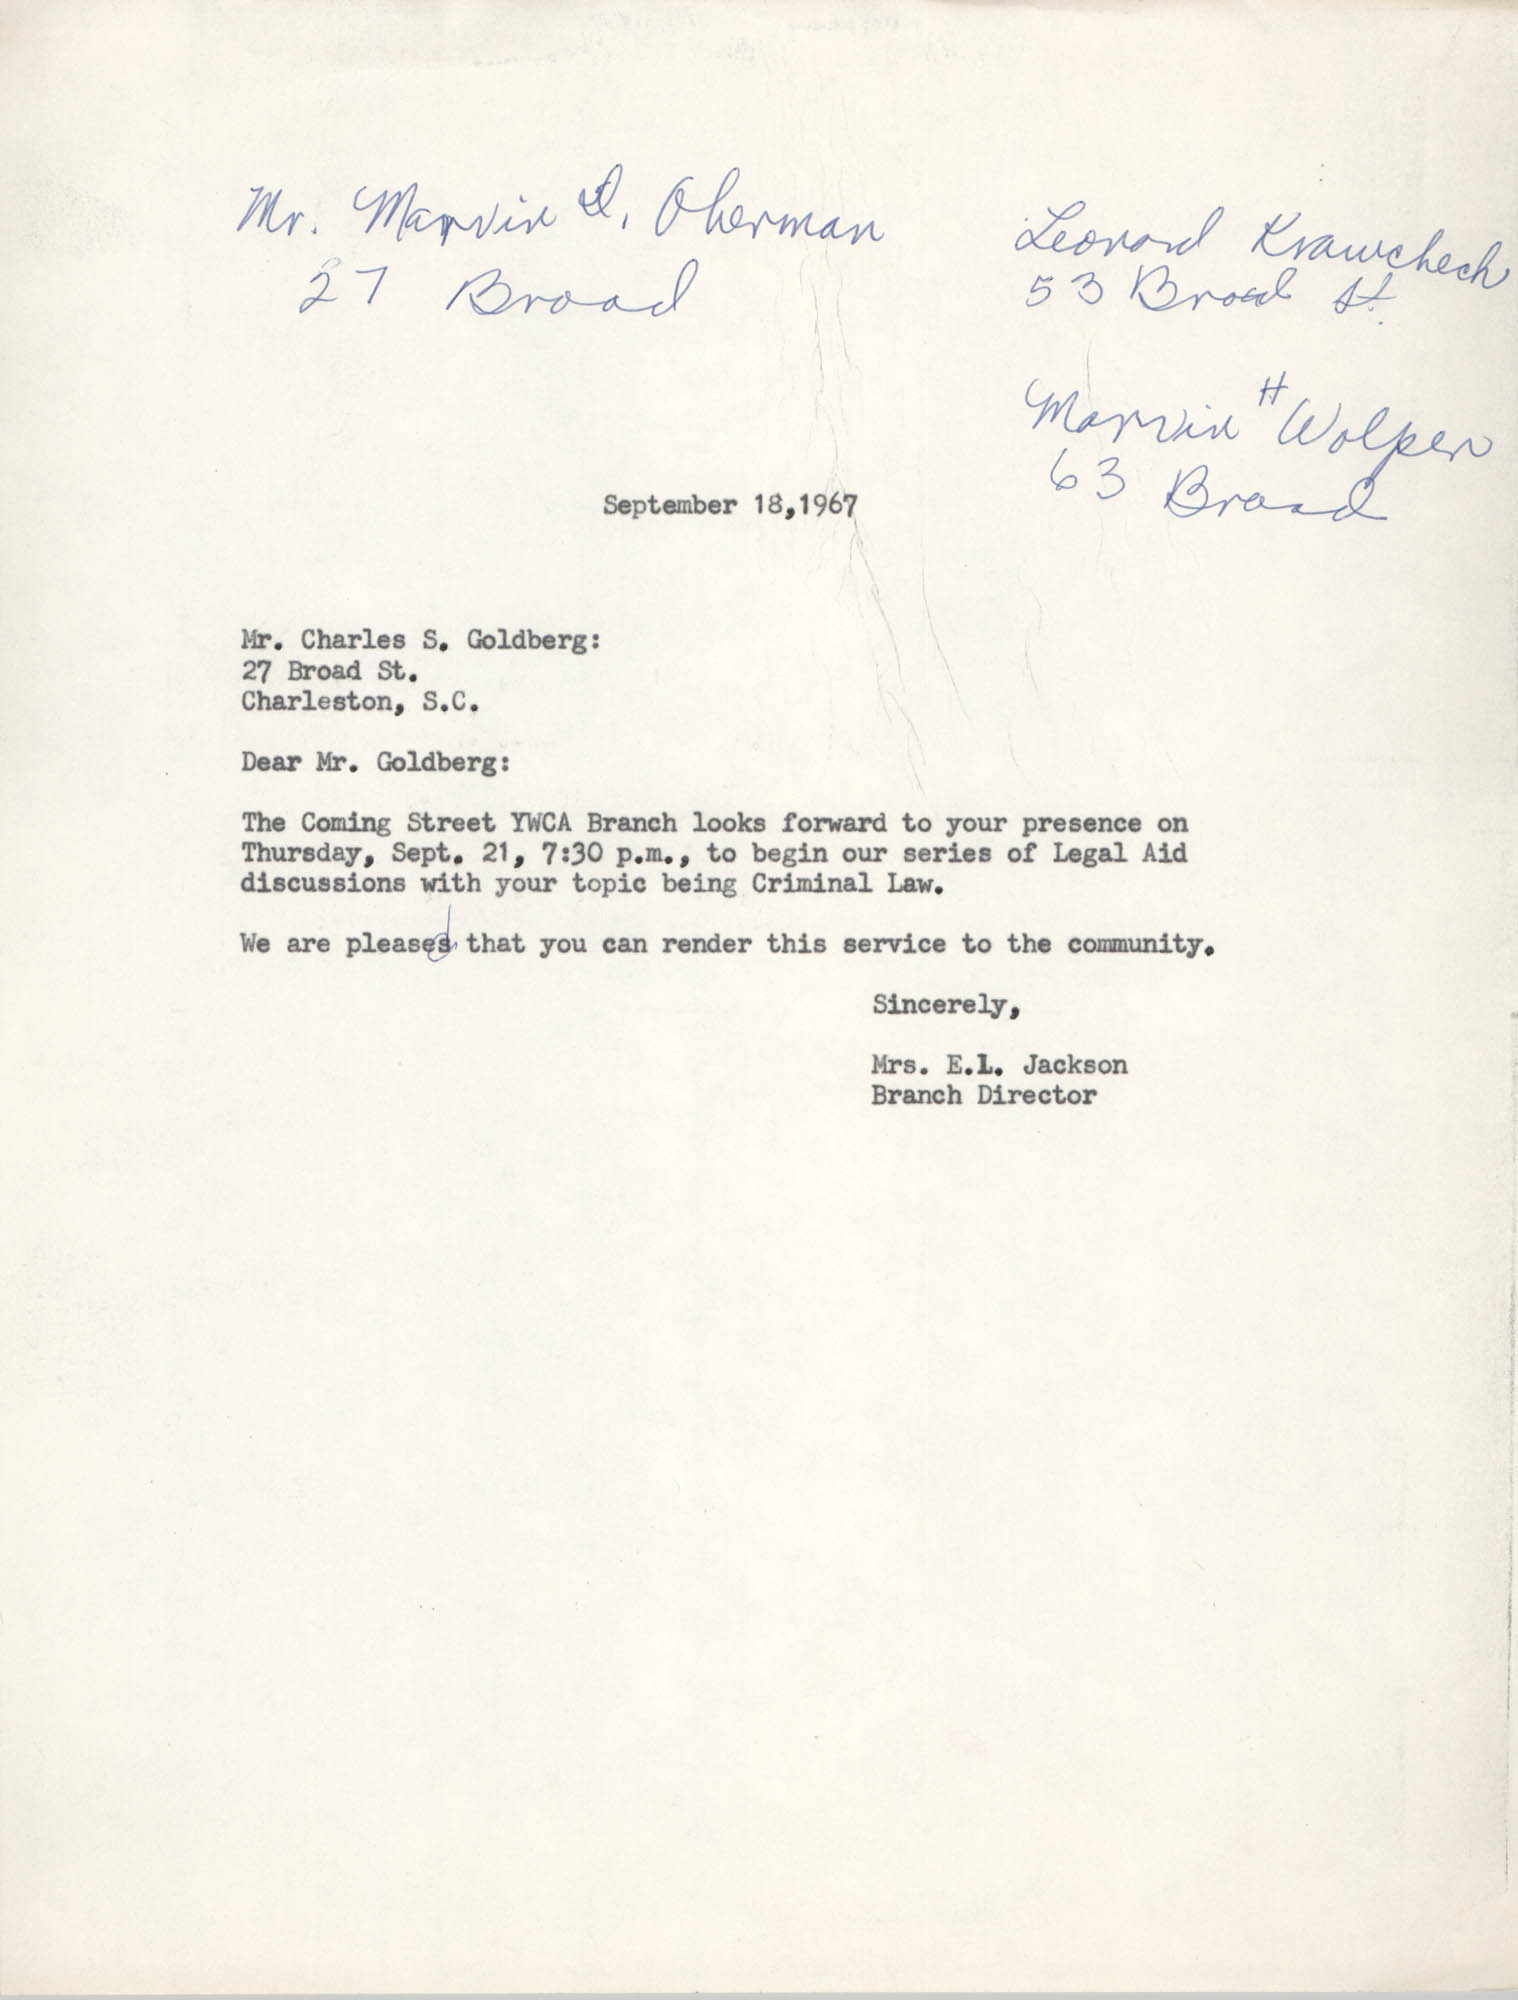 Letter from Christine O. Jackson to Charles S. Goldberg, September 18, 1967